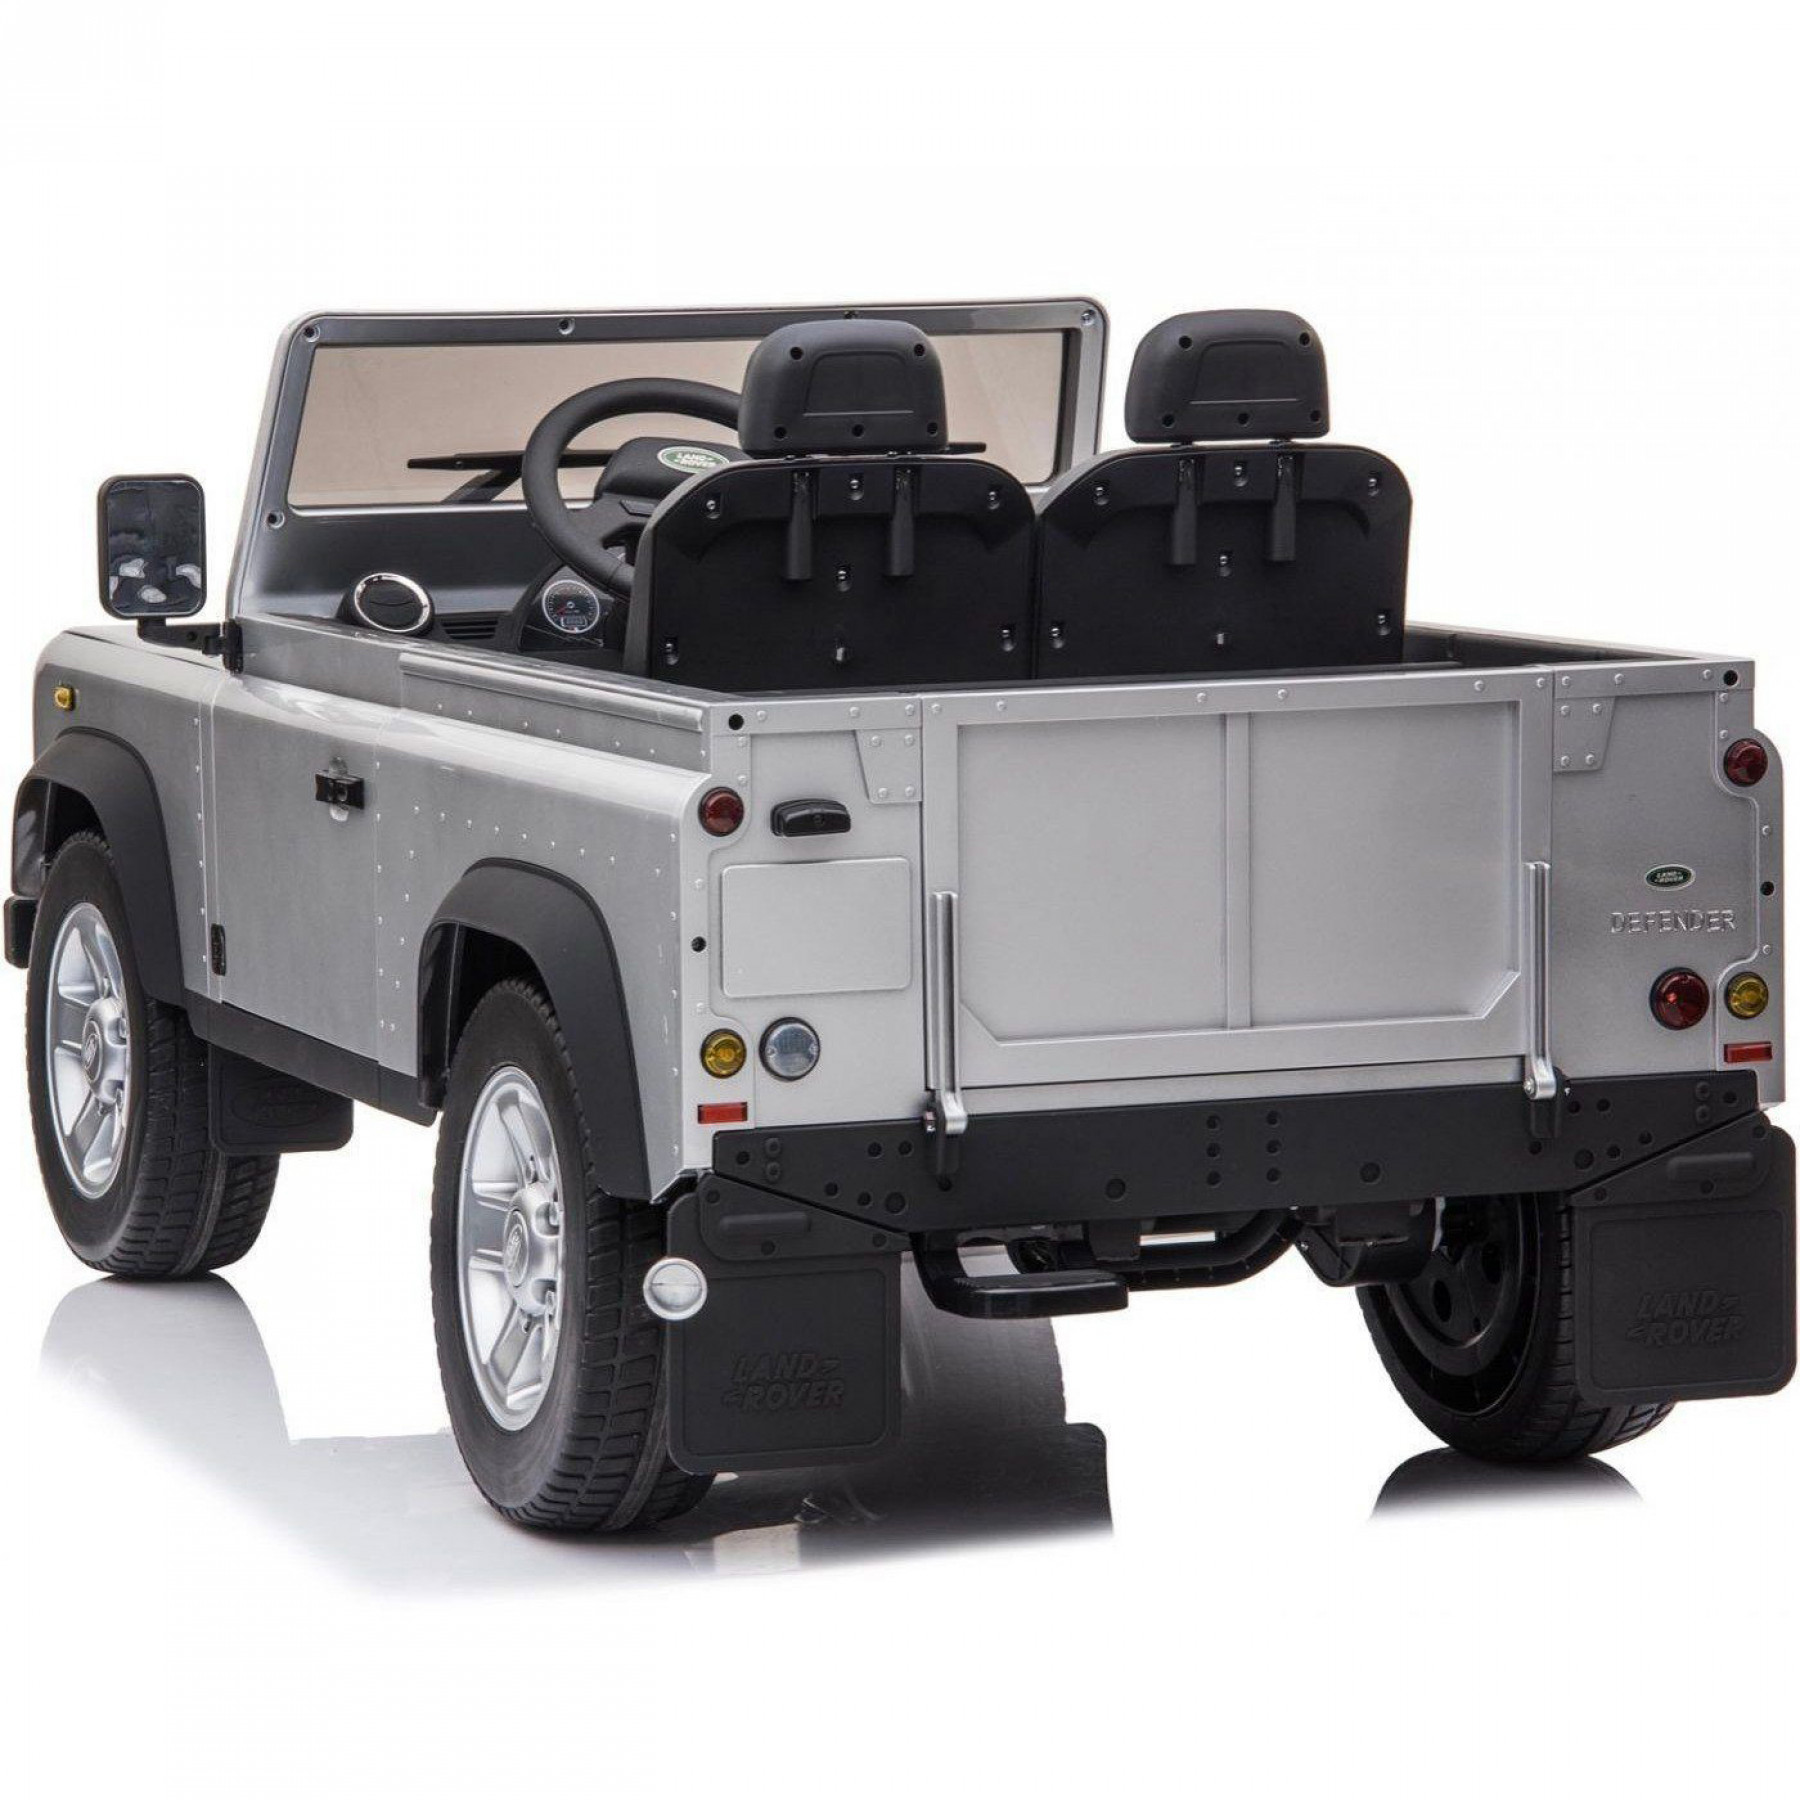 Xtreme 24V 4WD Licensed Land Rover Defender Ride on Electric Jeep Painted Silver